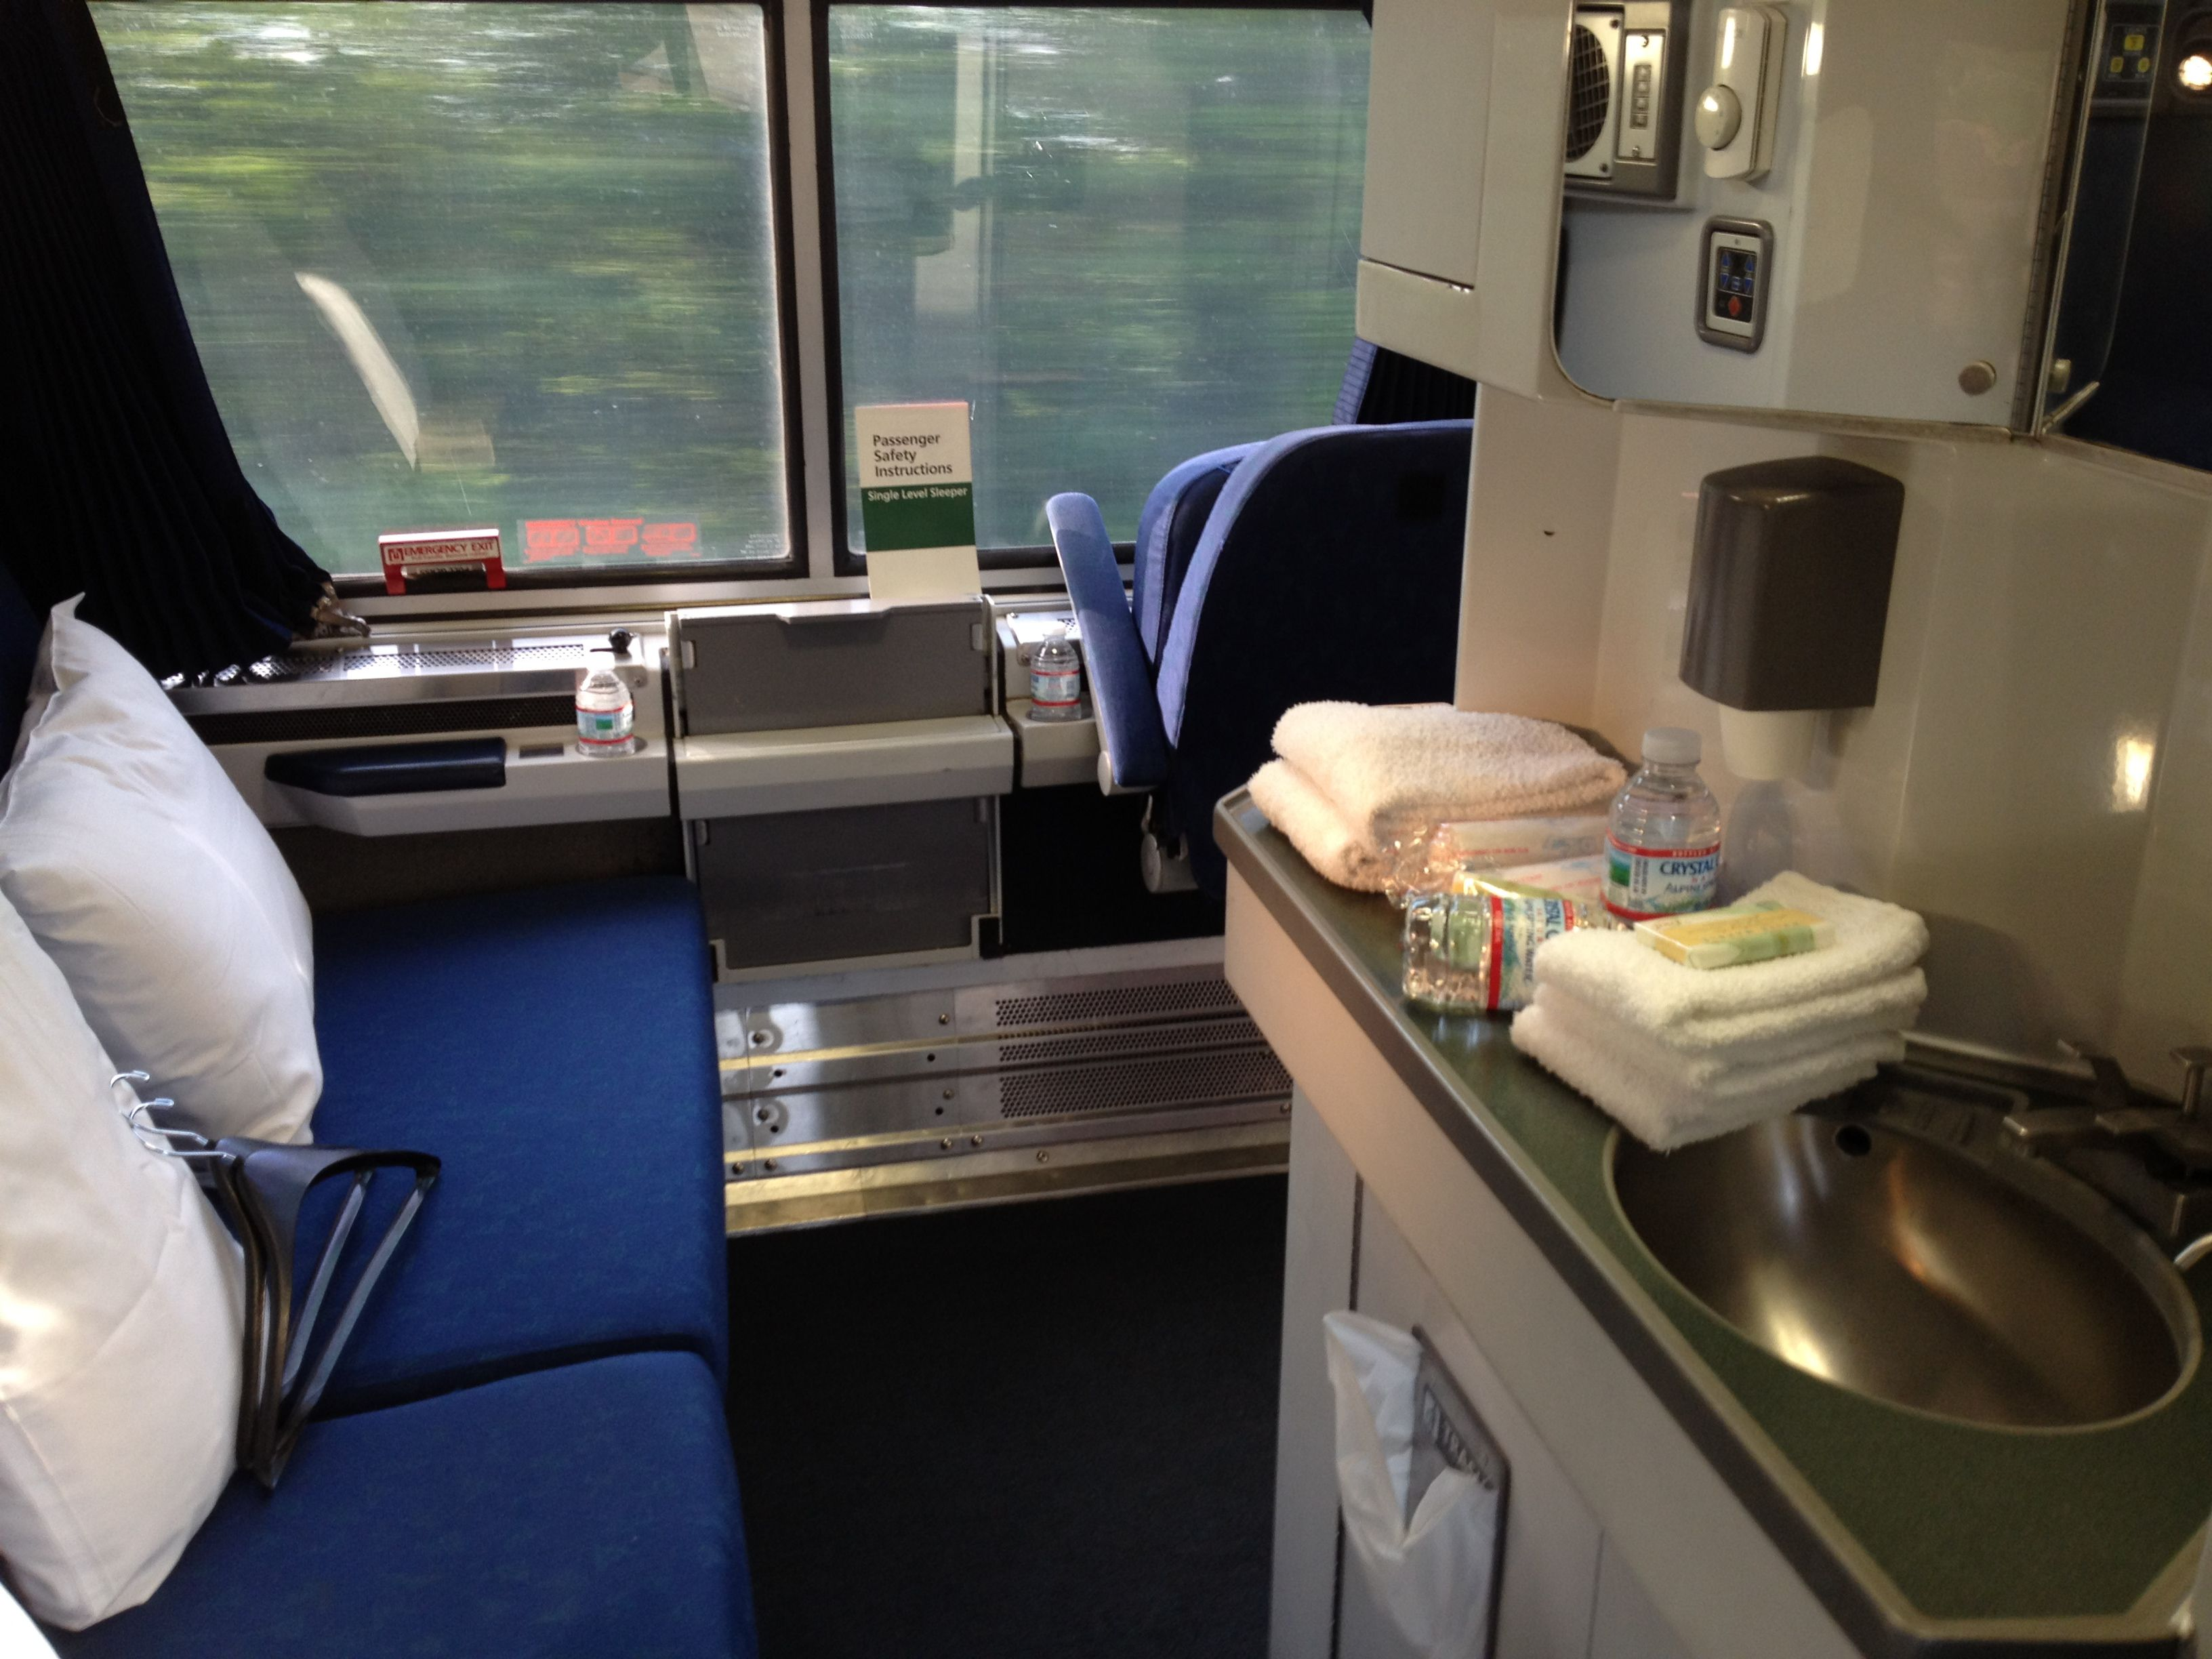 bedroom on amtrak's viewliner service on the eastern seaboard. can